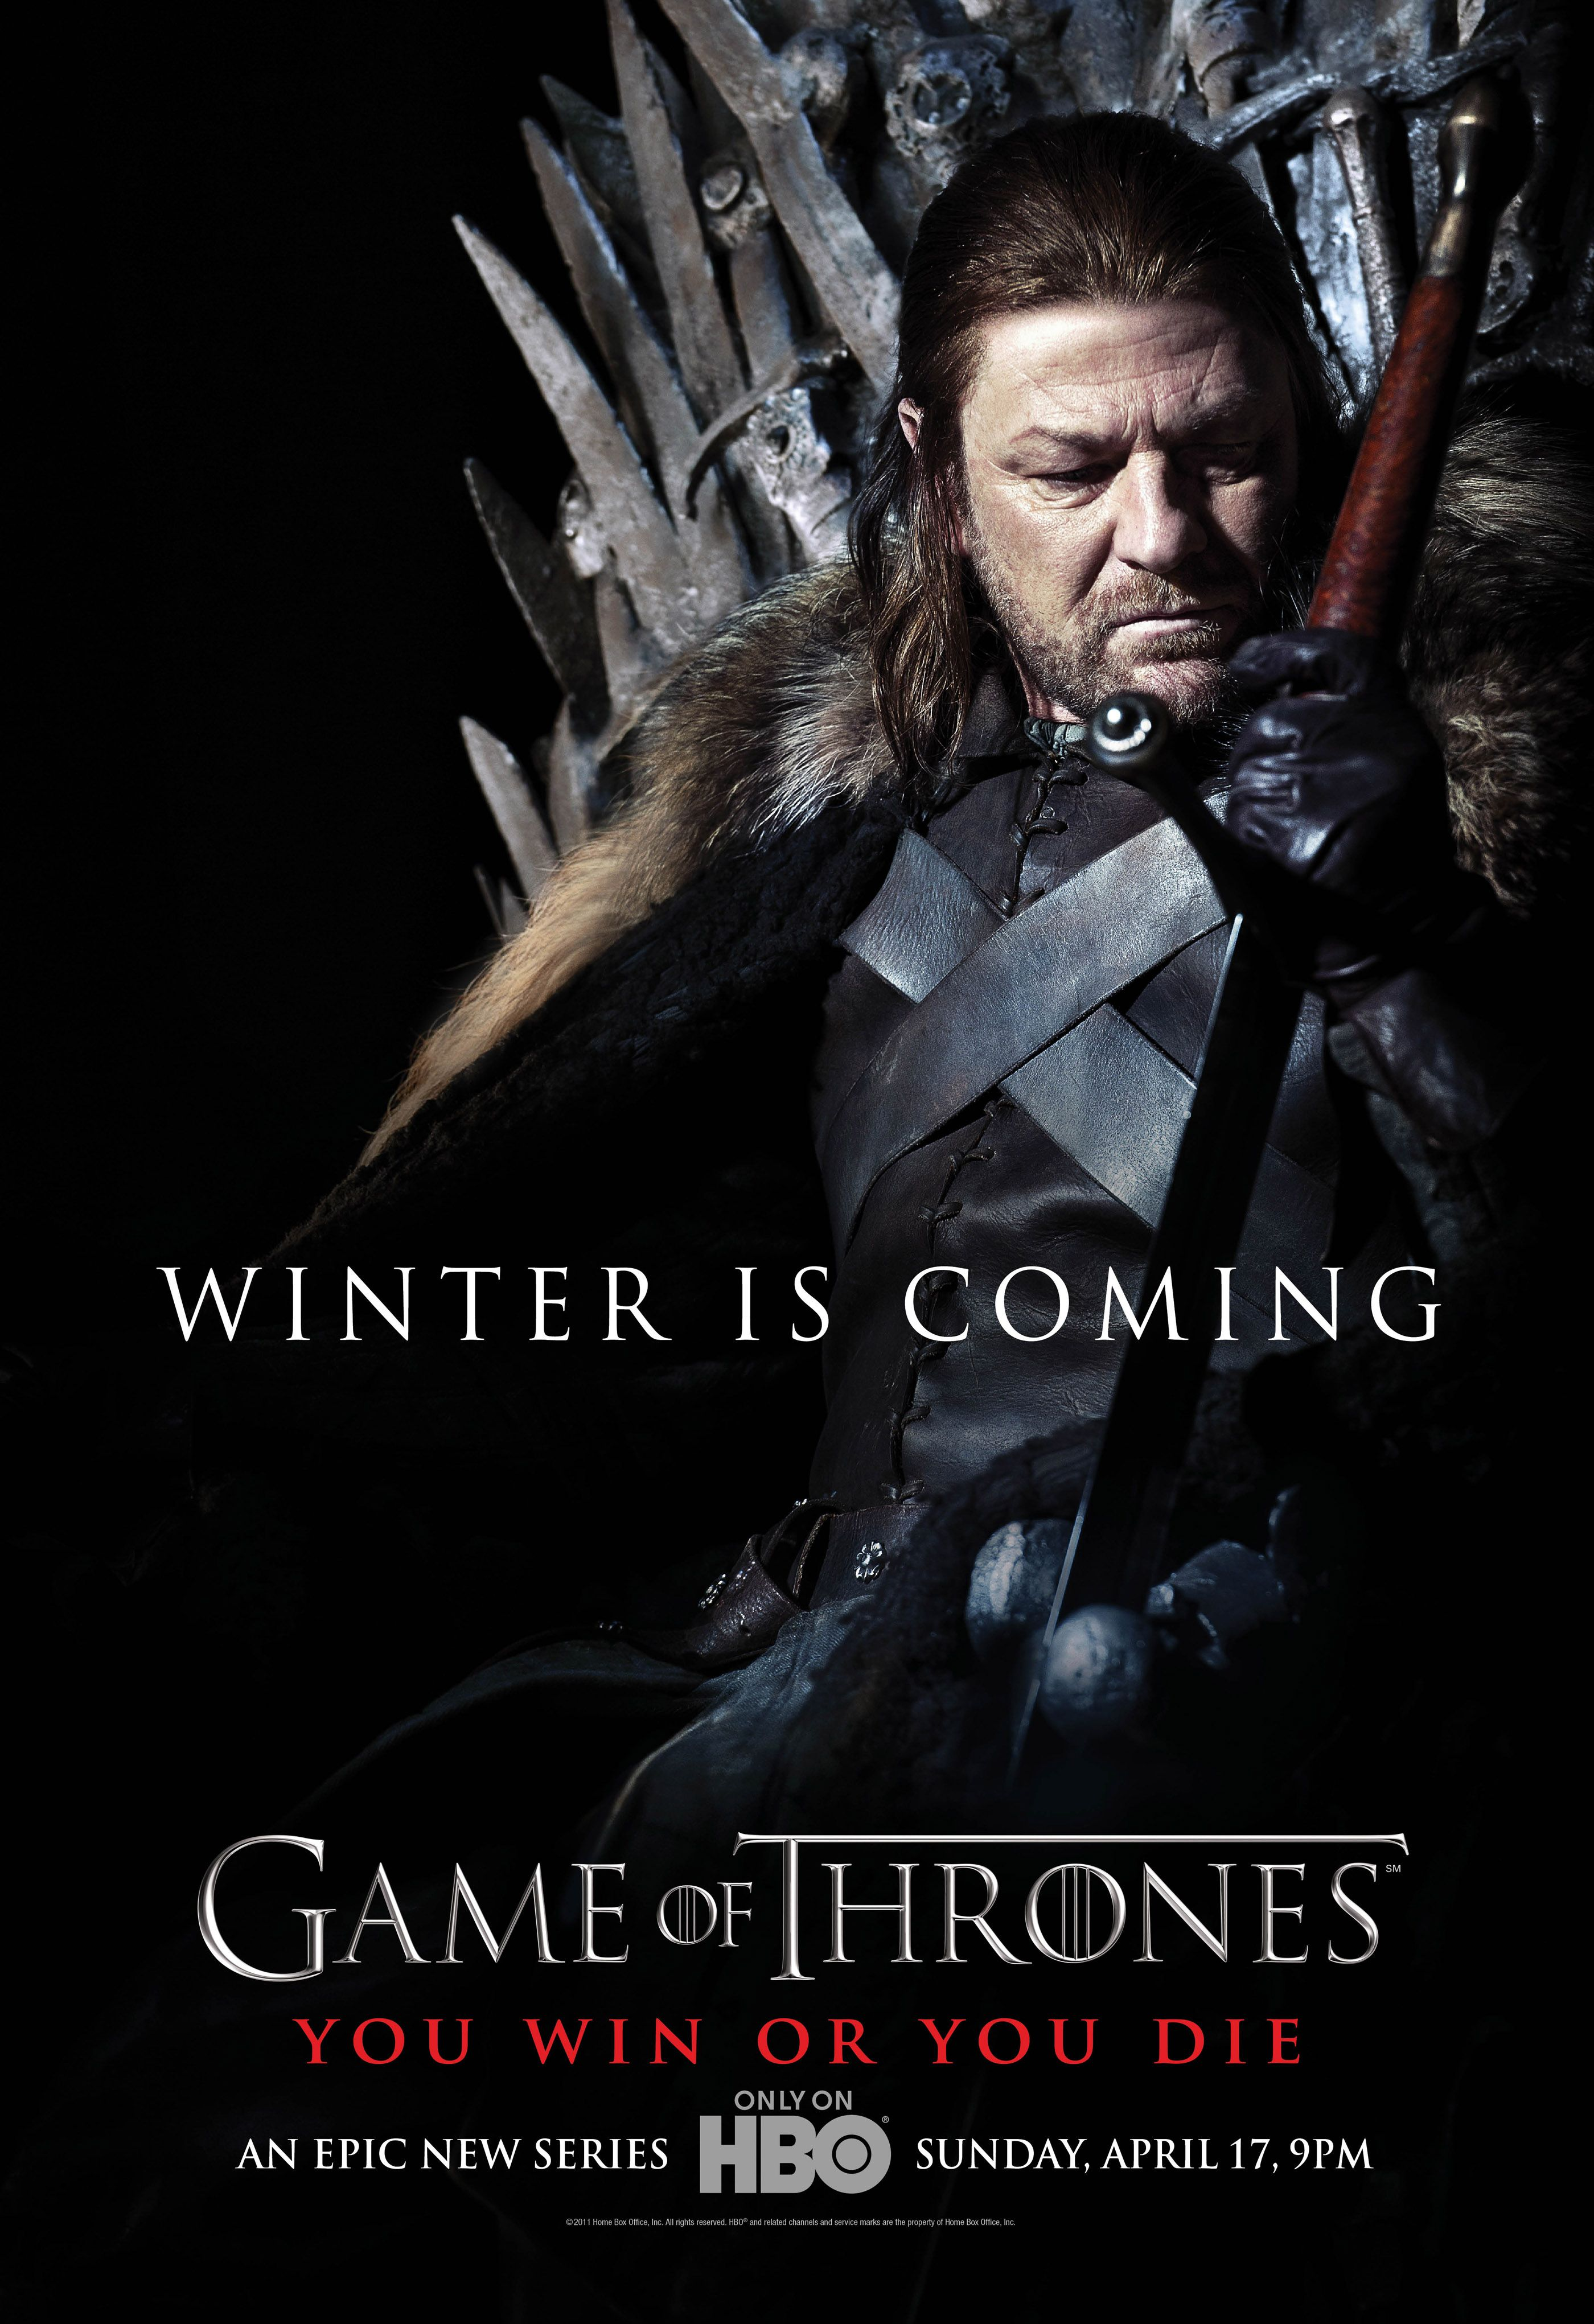 Game Of Thrones Season 1 Promotional Posters Winter Is